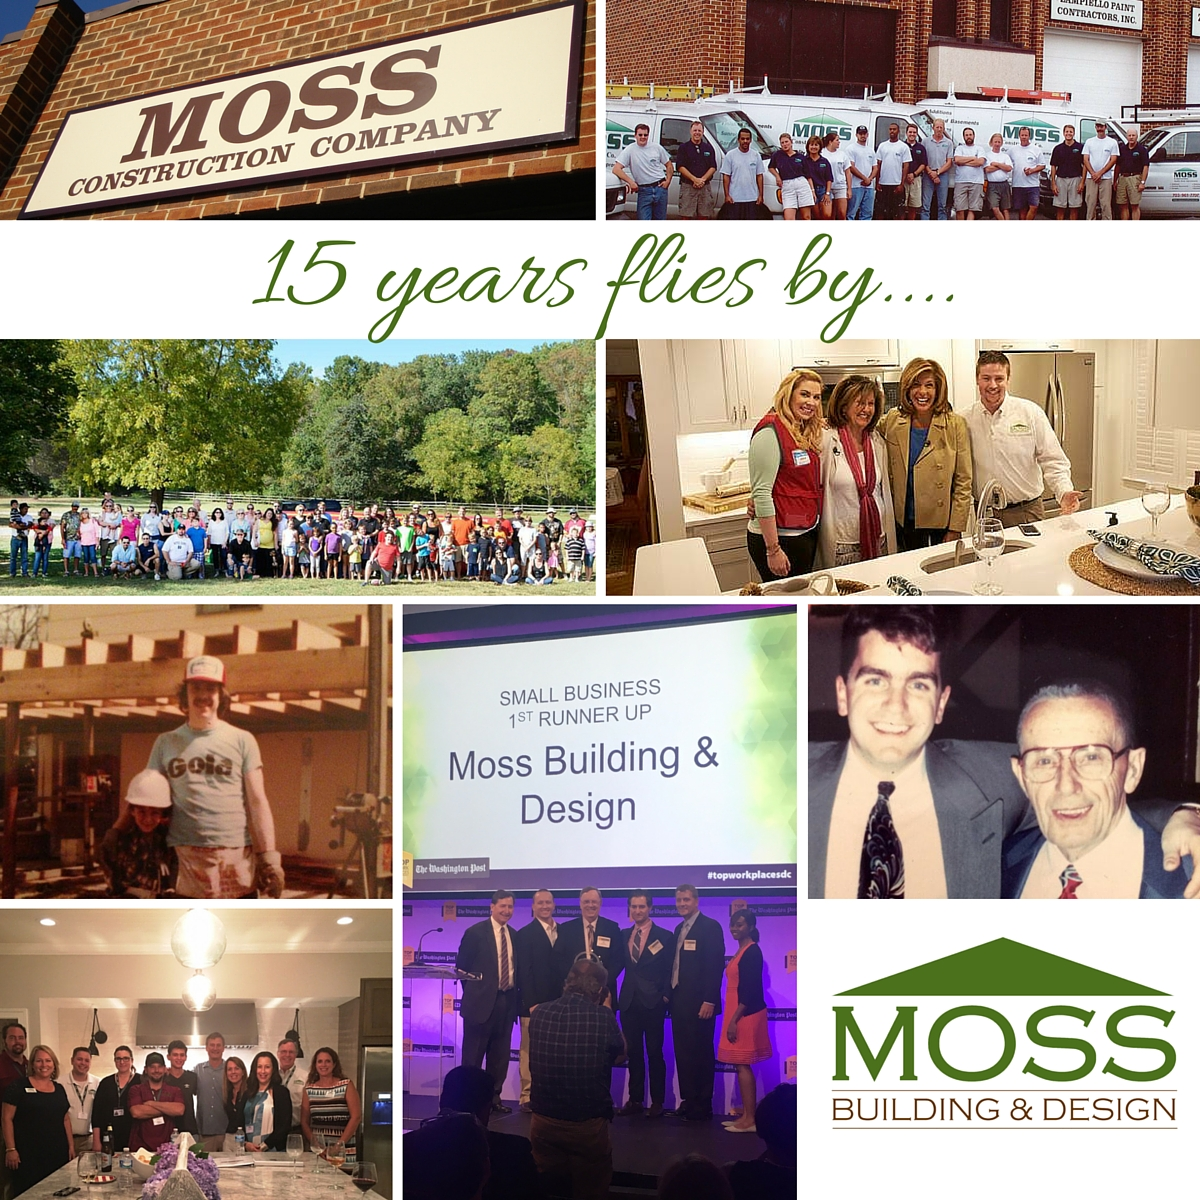 Moss Building And Design Celebrates 15 Years As Top Northern Virginia Contractor